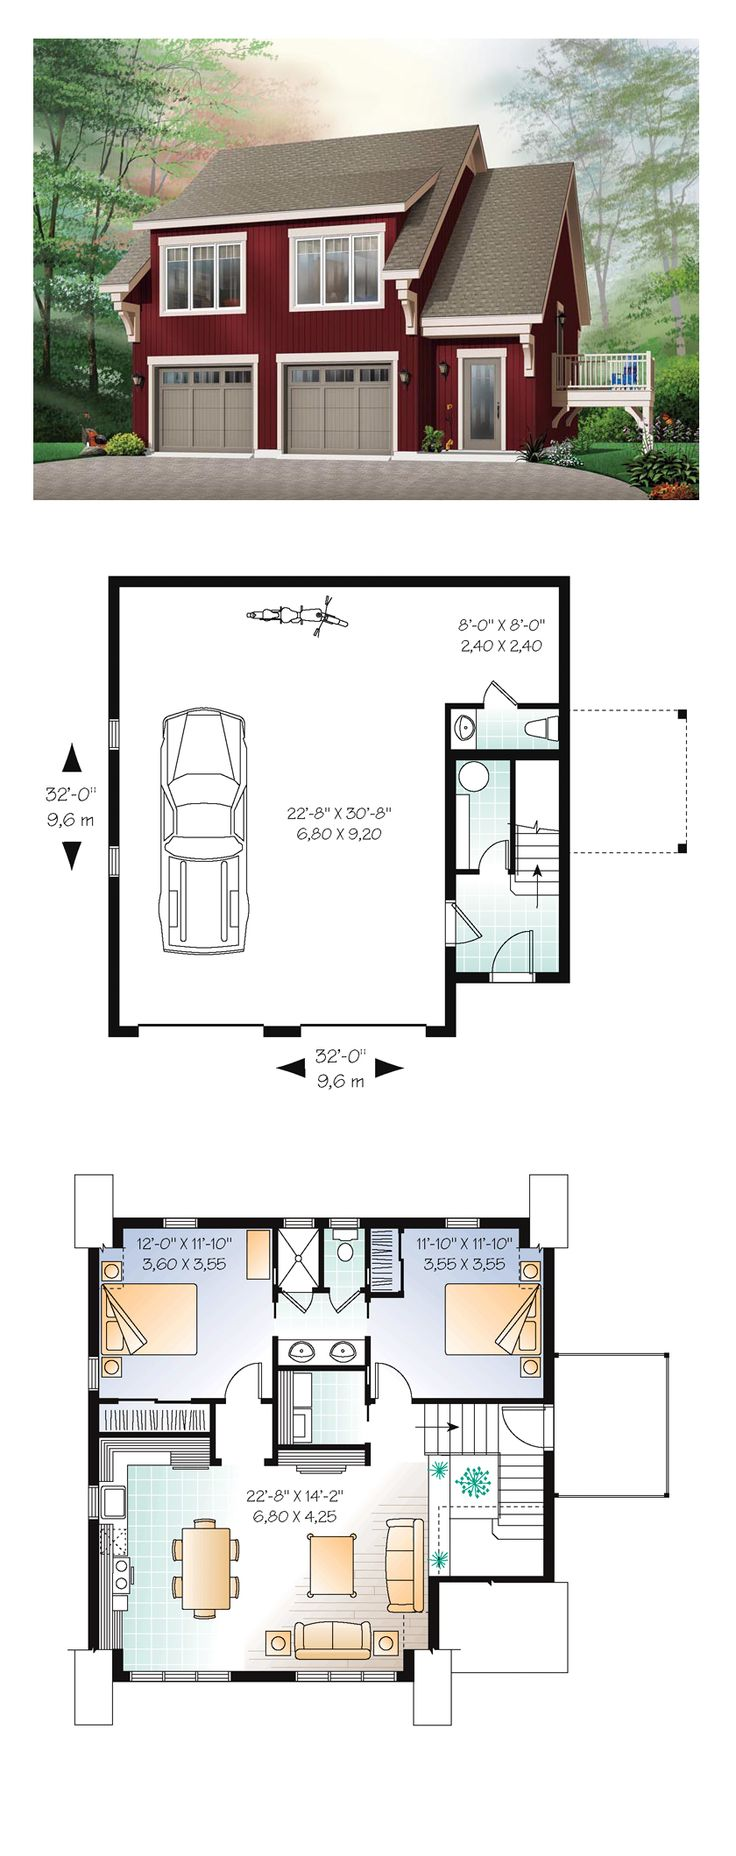 Garage Apartment Plans 2 Bedroom - WoodWorking Projects ...